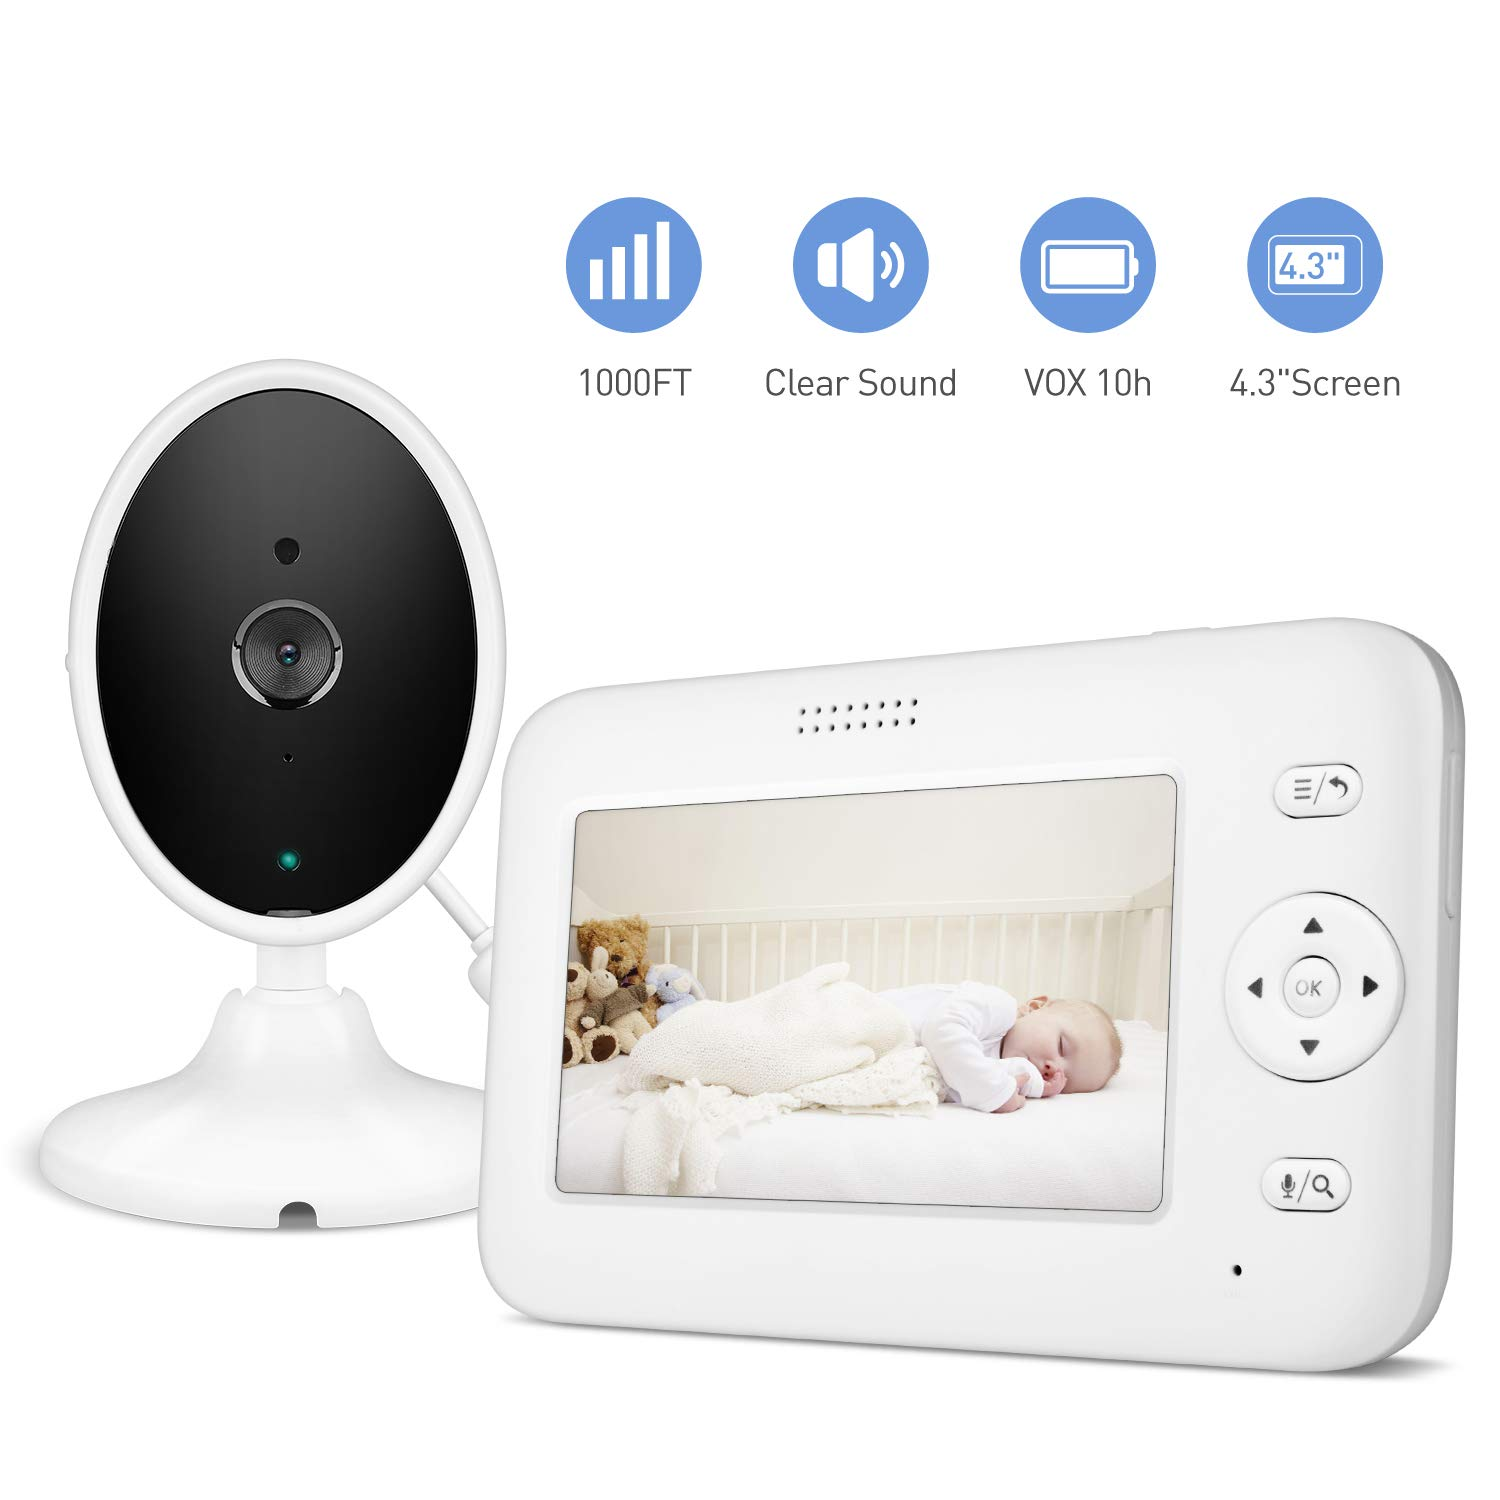 Baby Monitor, 4.3'' Video Baby Monitor with Camera Audio, Long Battery Life/VOX, 1000ft Range, Room Temperature & Accurate Audio Sensor, Infrared Night Version, 2-Way Audio, Out of Range Alert